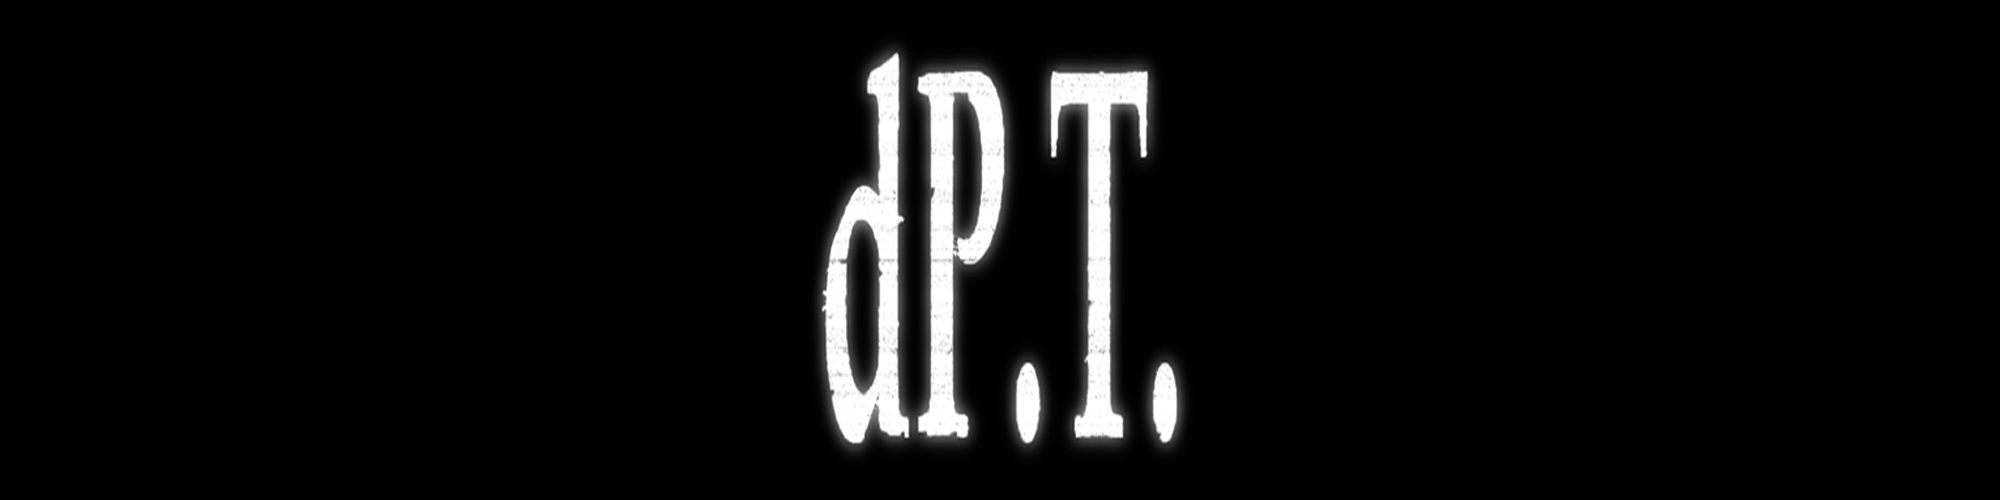 dP.T. - dr Pepper Terror